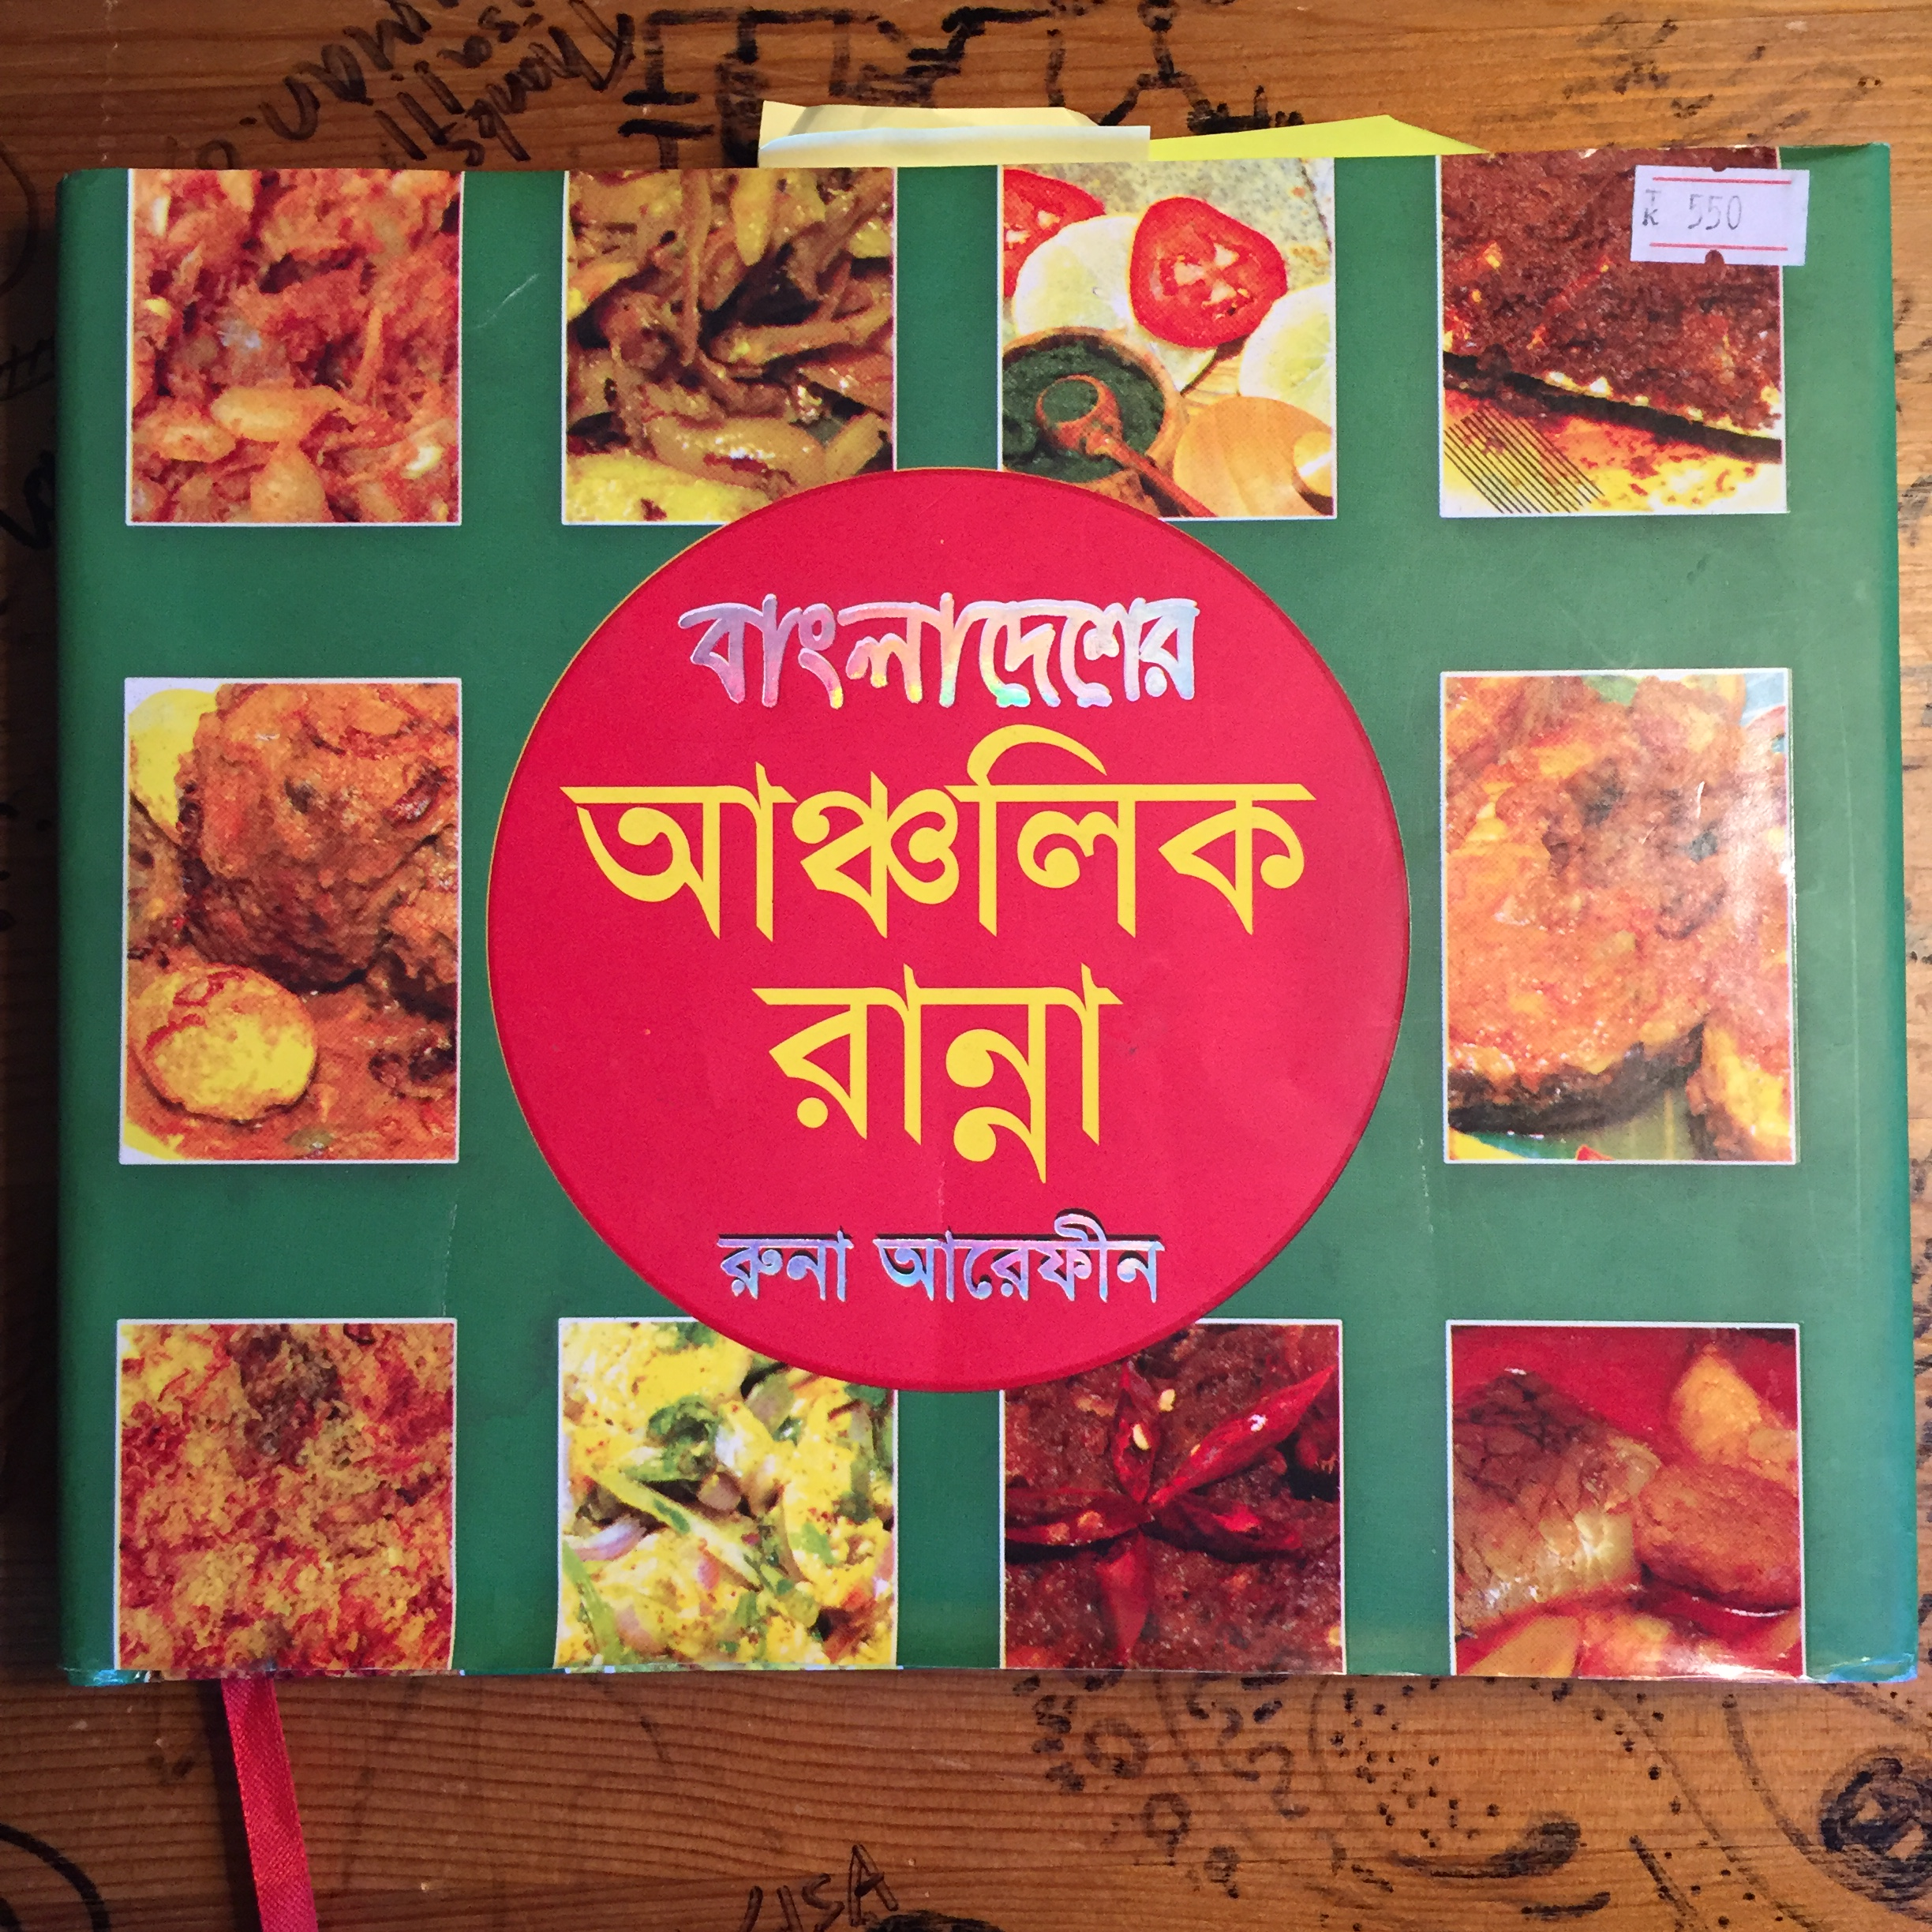 Bangladeshi cookbooks and national identity the hungry philosopher this book written in bangla is my new favorite the introduction talks about rescuing threatened regional recipes and traditions about meeting cooks across forumfinder Choice Image